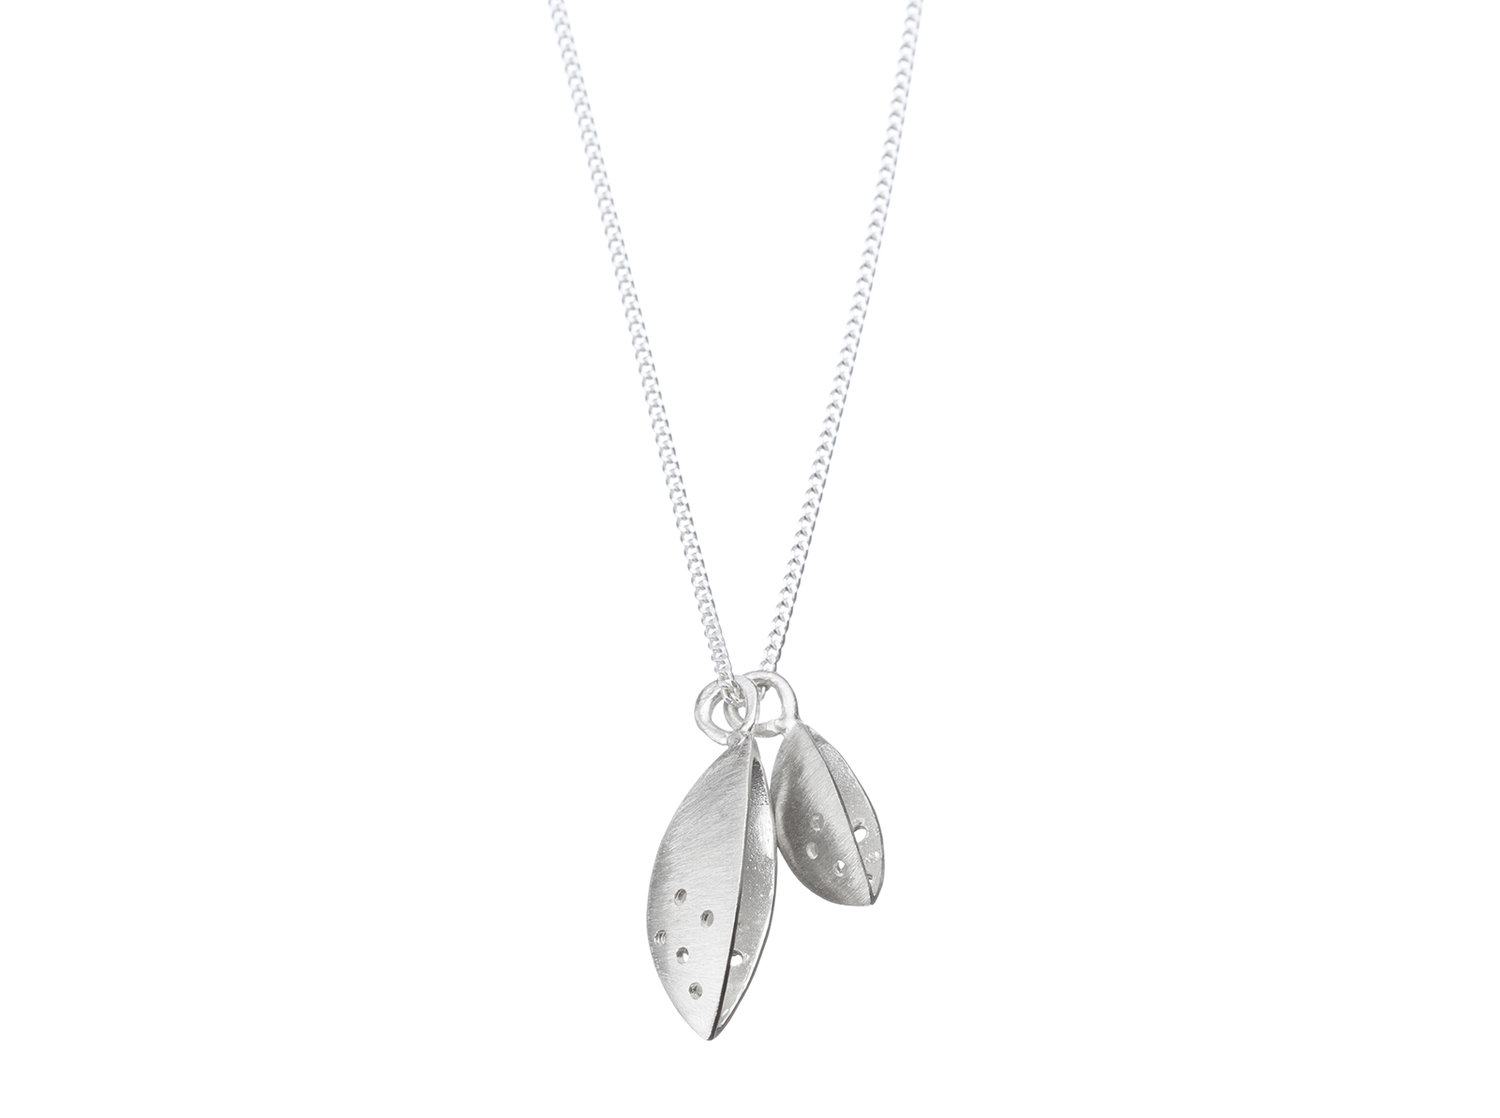 Sterling silver twin seed pod necklace